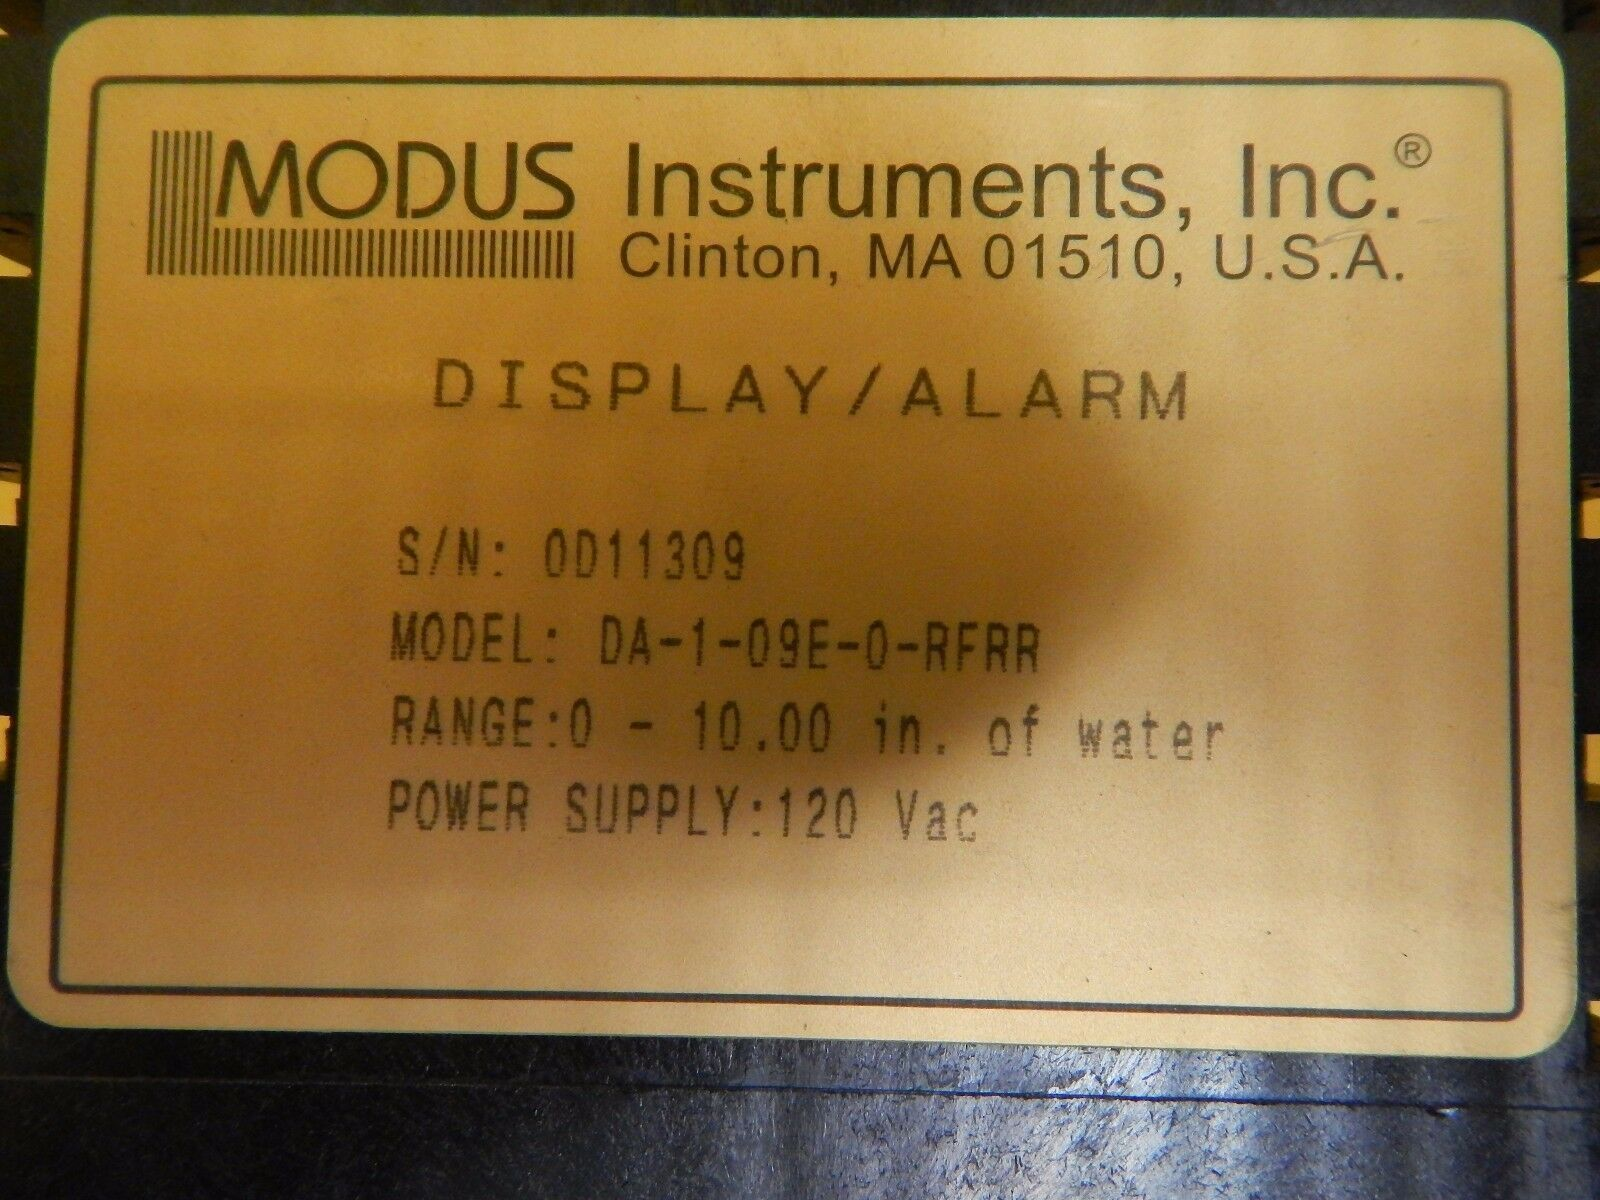 Modus Instruments DA-1-09E-0-RFRR Display Alarm Lot of 2 Used Working